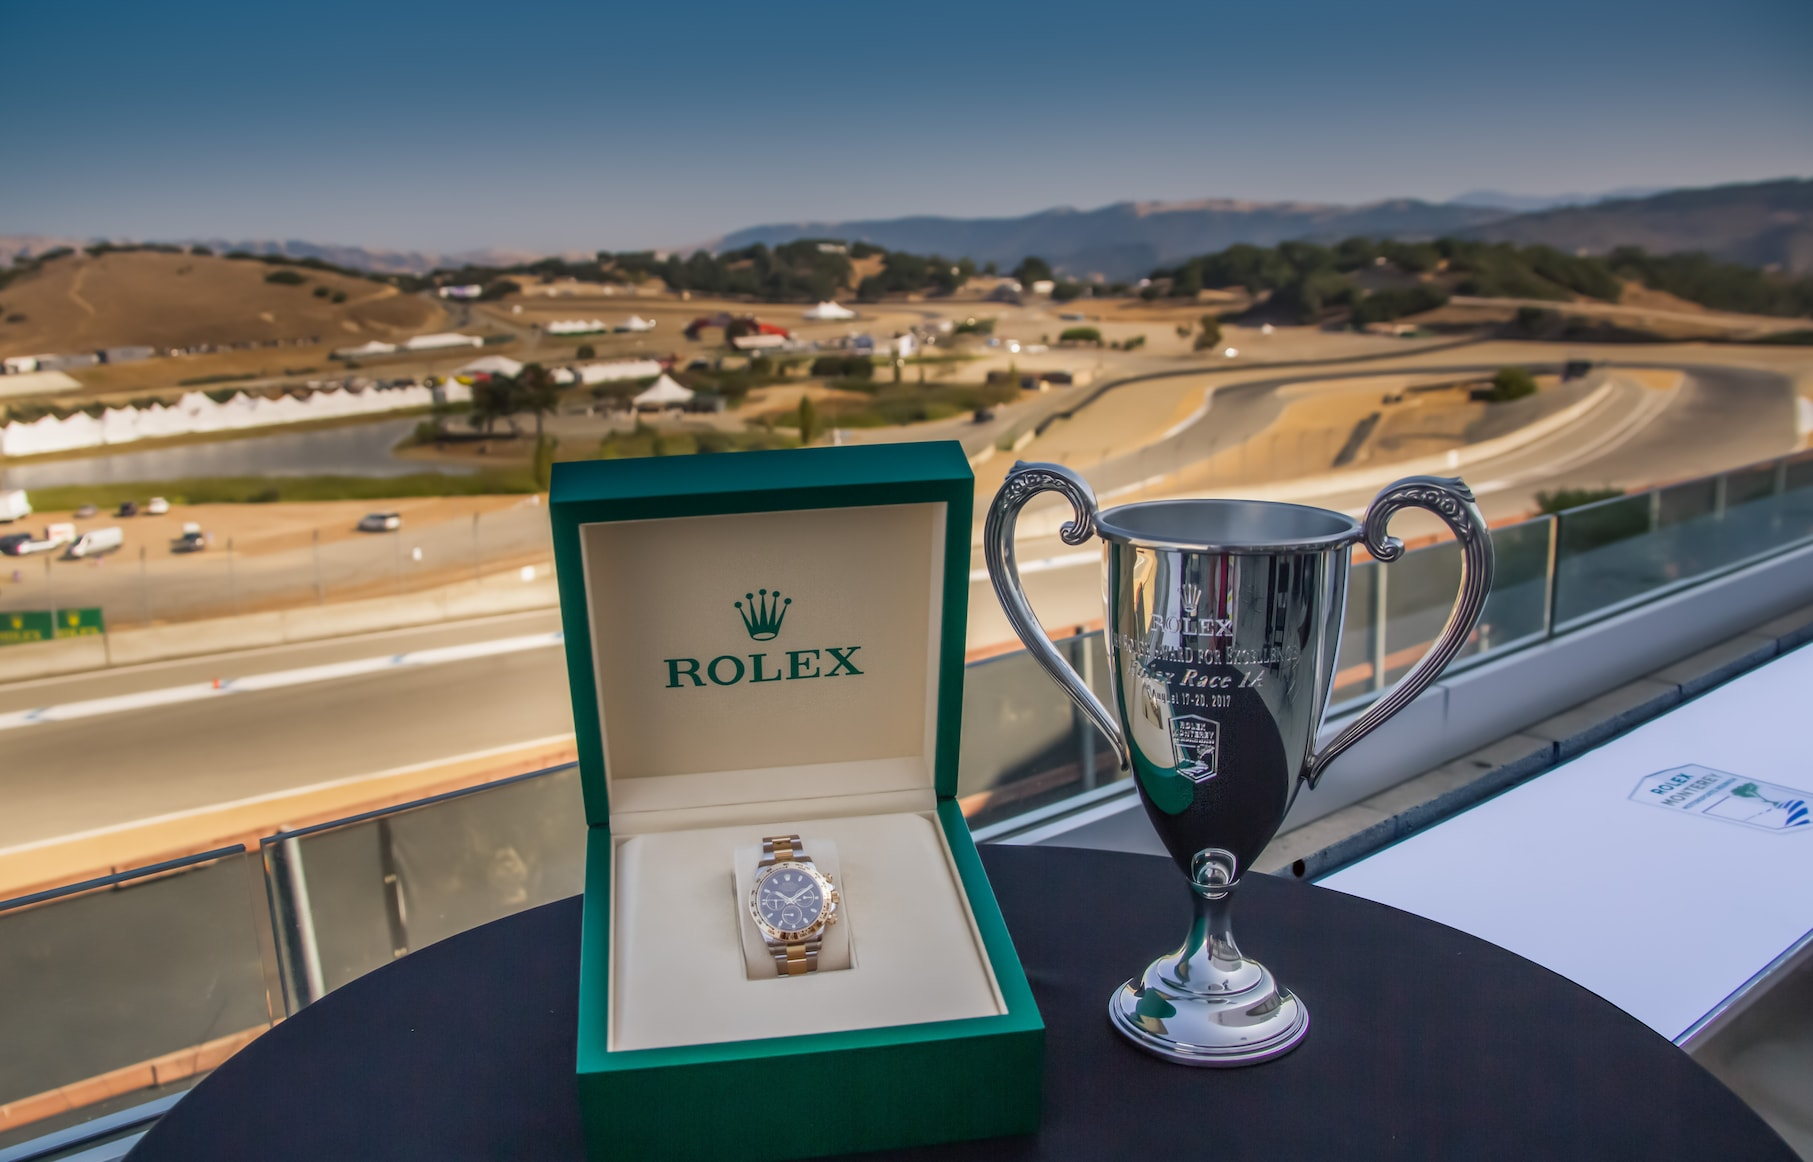 Rolex Trophy and watch given to winners at Rolex Monterey Motorsports Reunion